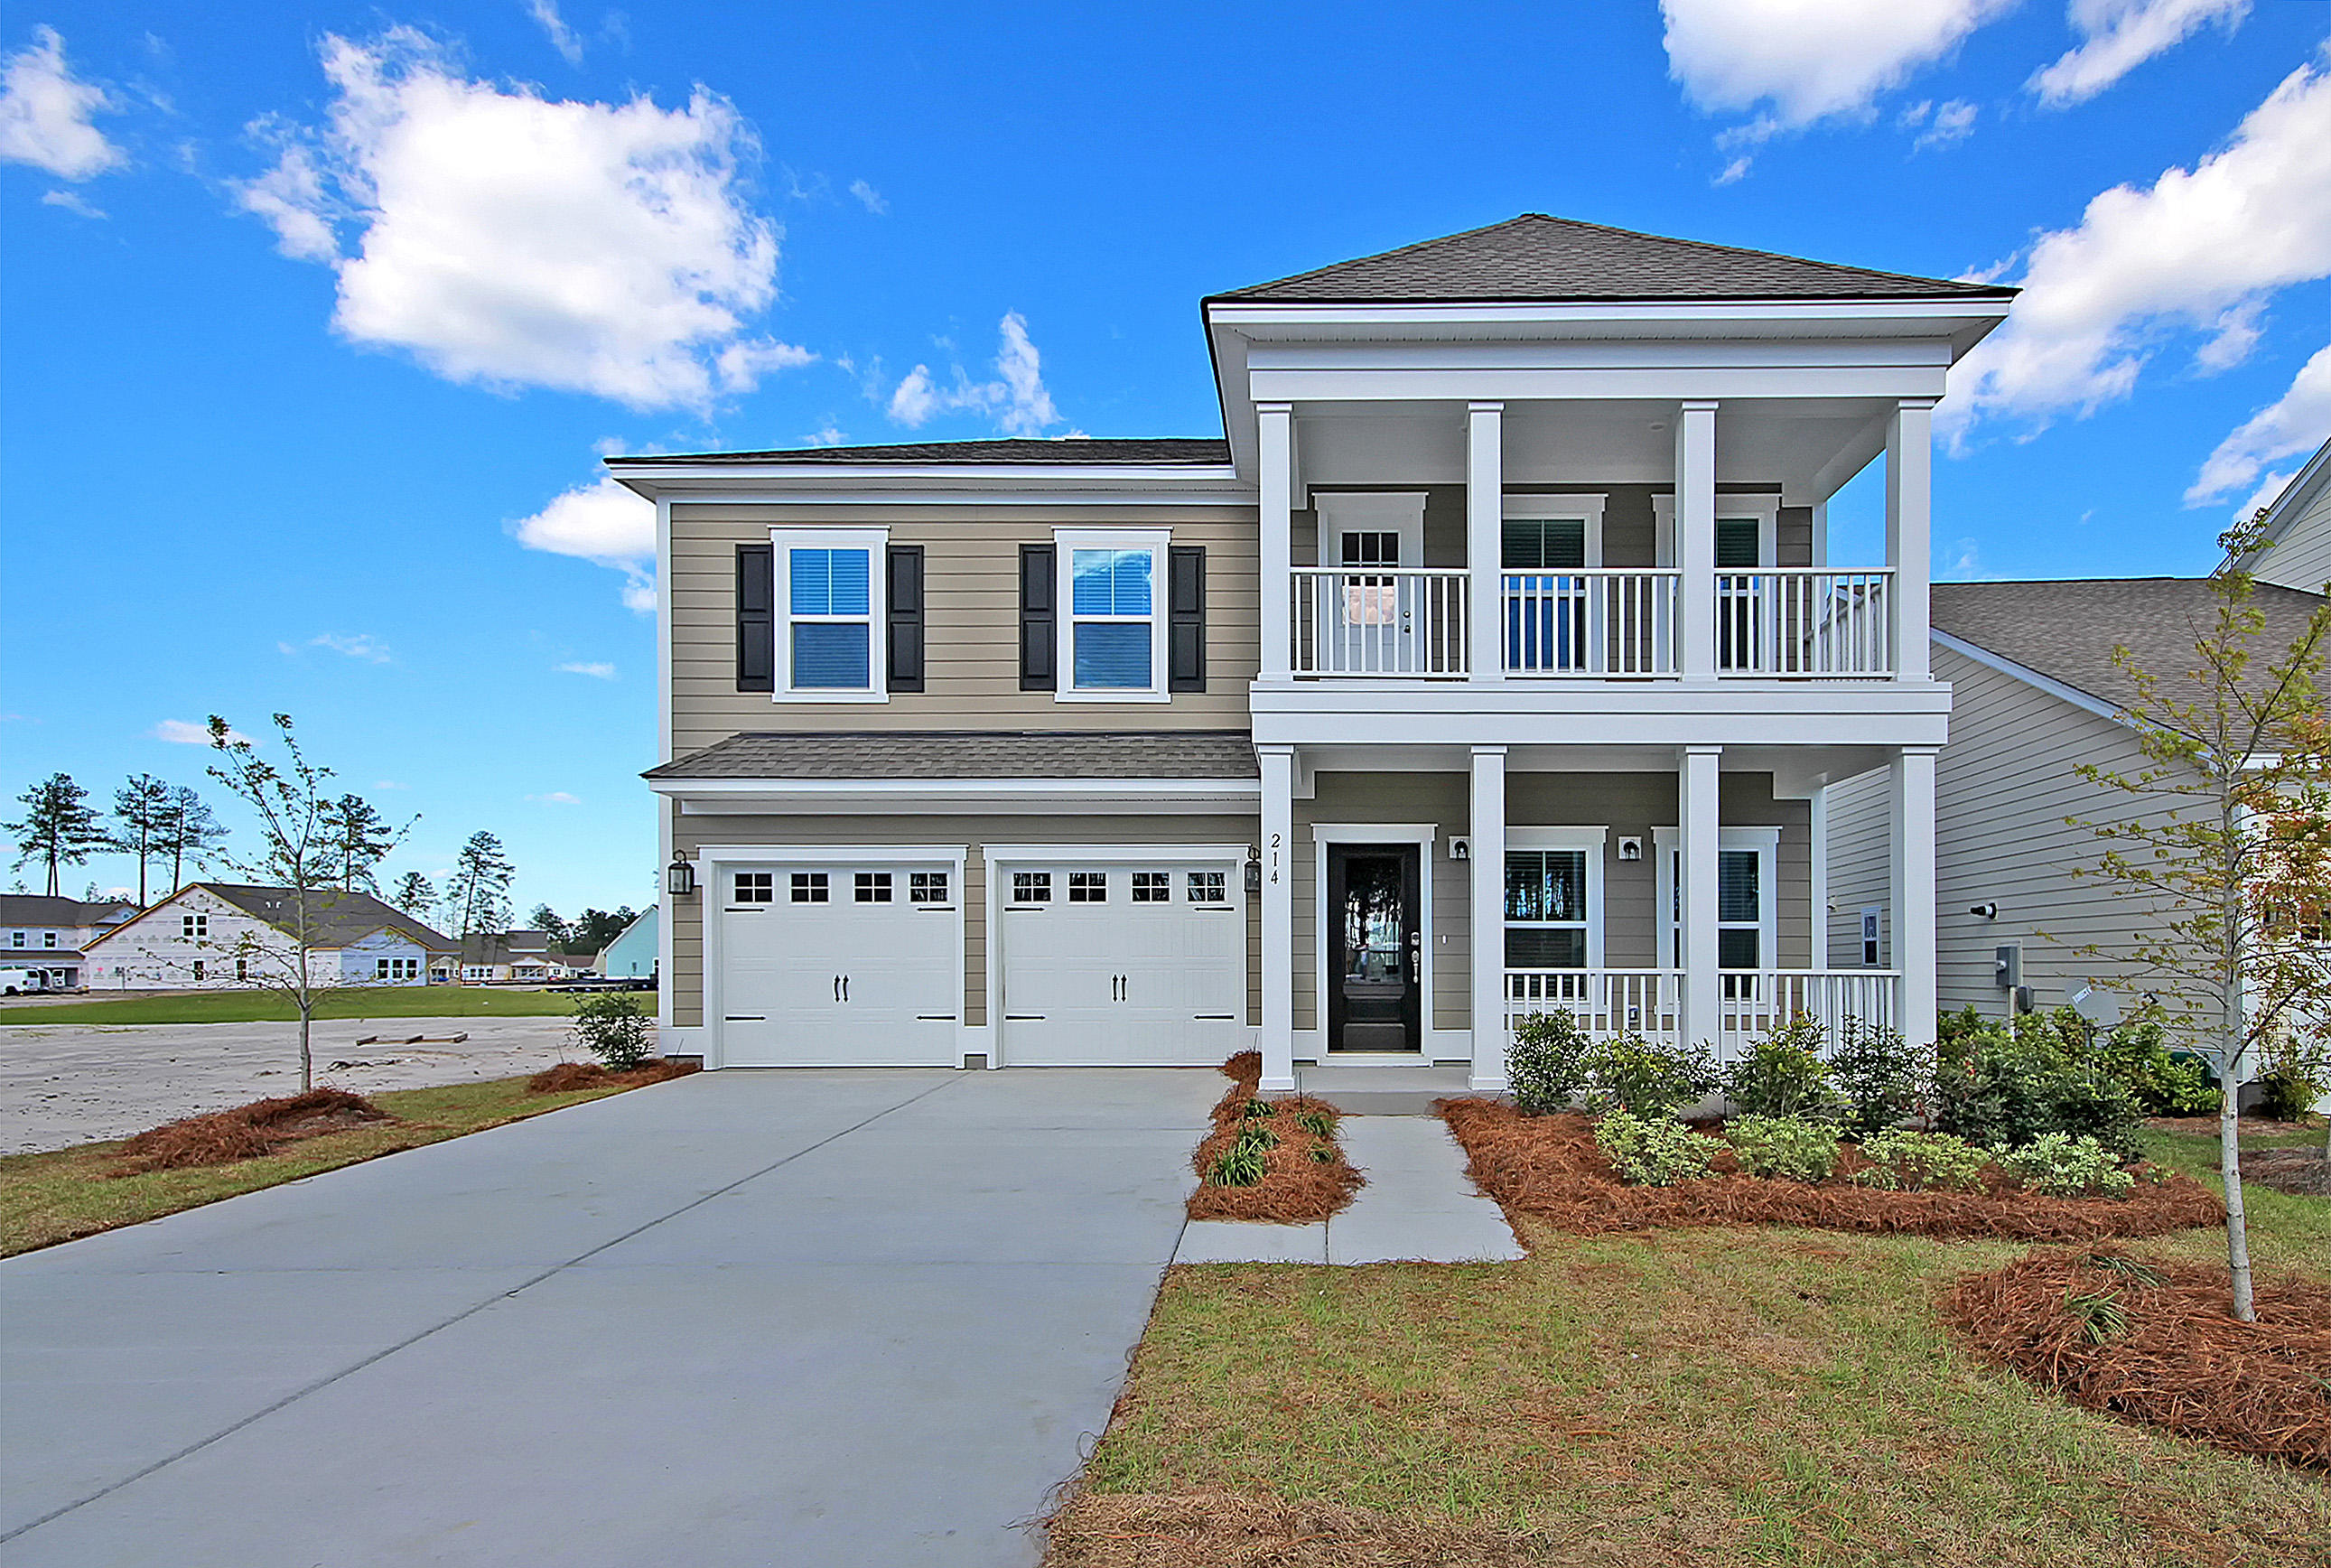 11 Richfield Way Summerville, SC 29486